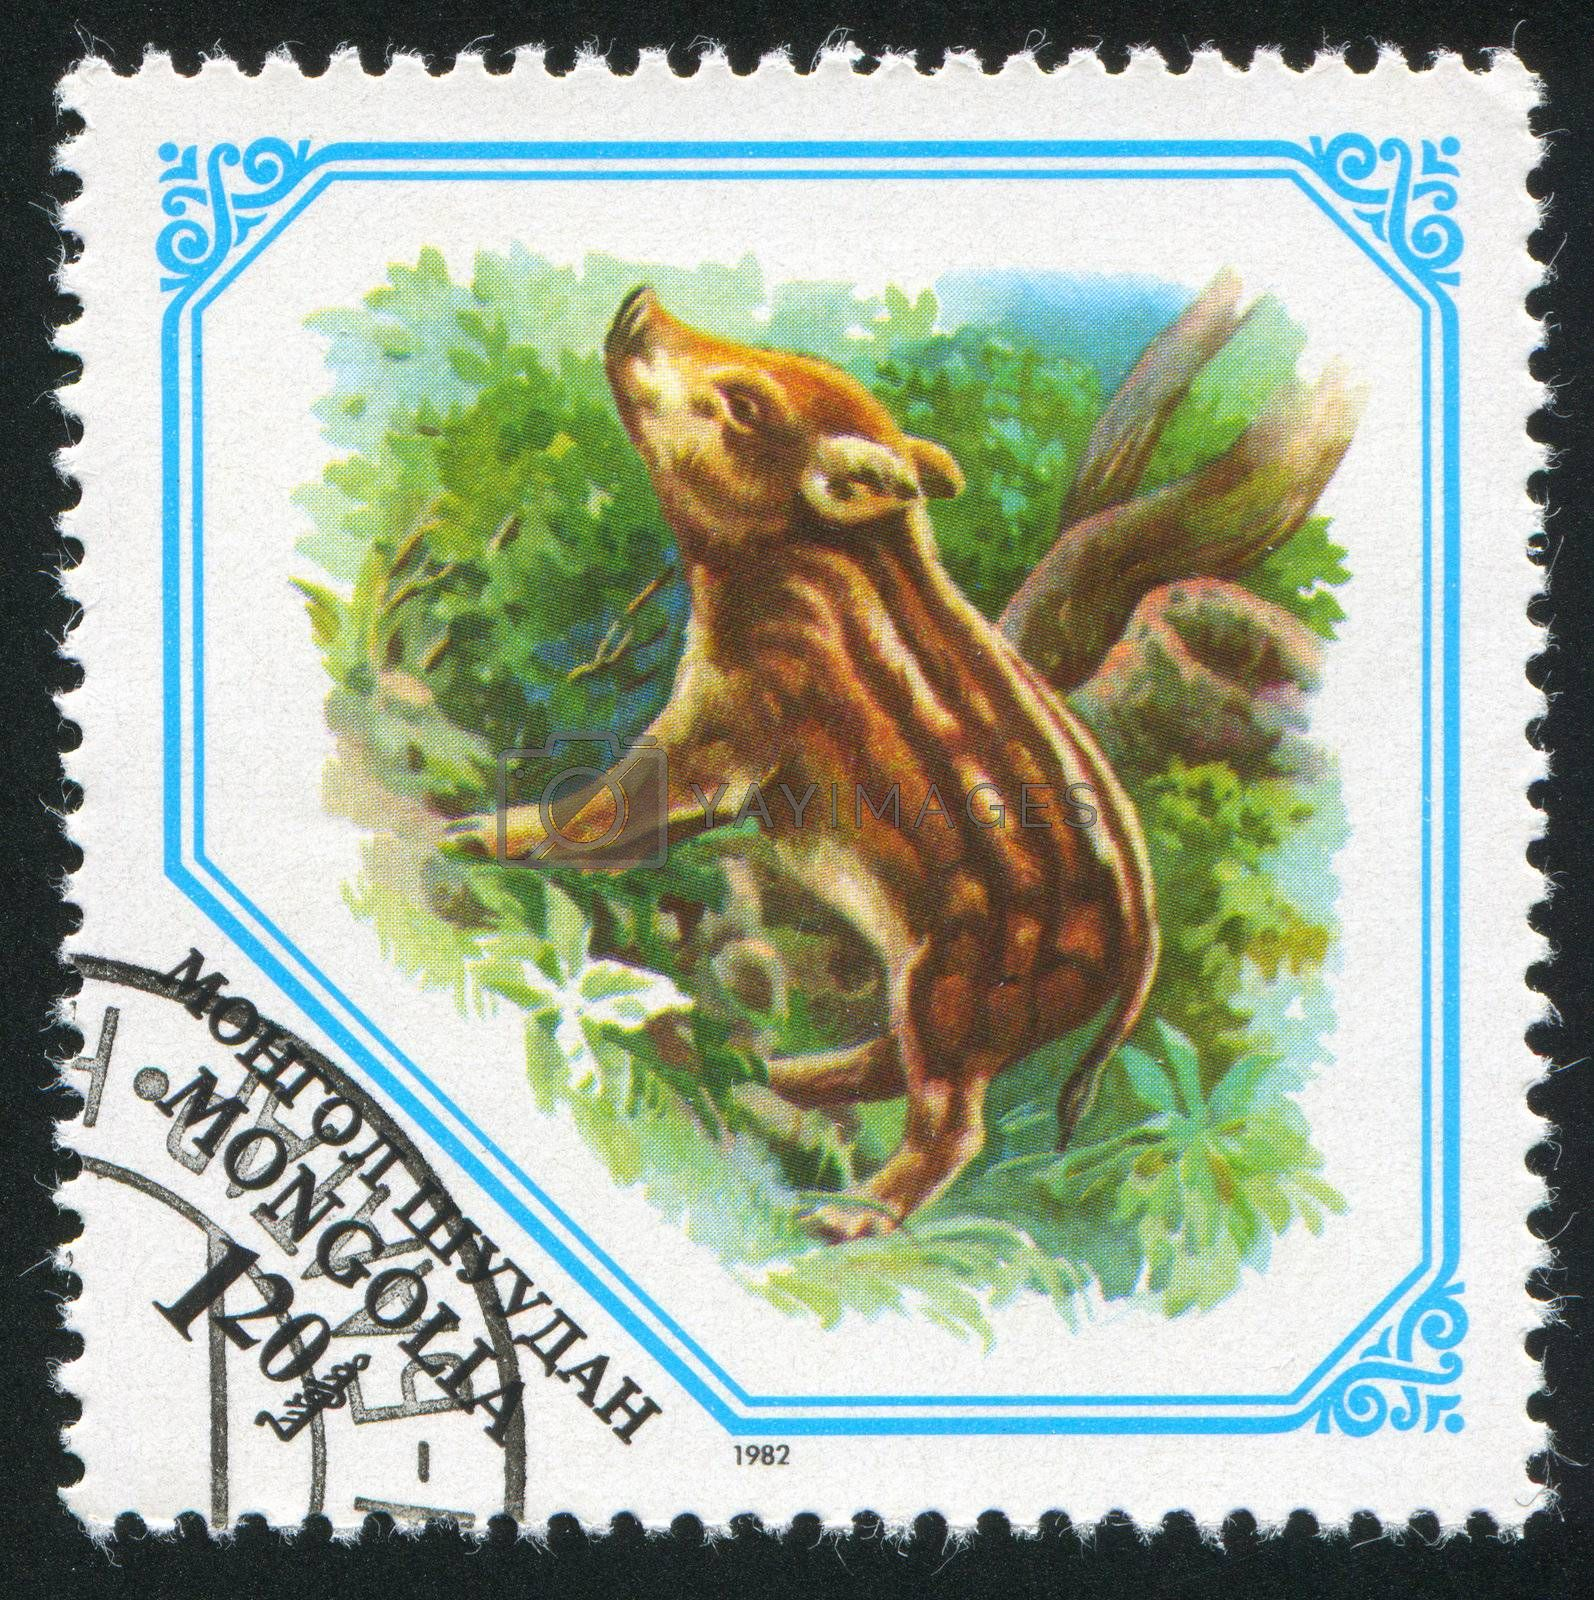 MONGOLIA - CIRCA 1982: stamp printed by Mongolia, shows Young boar, circa 1982.